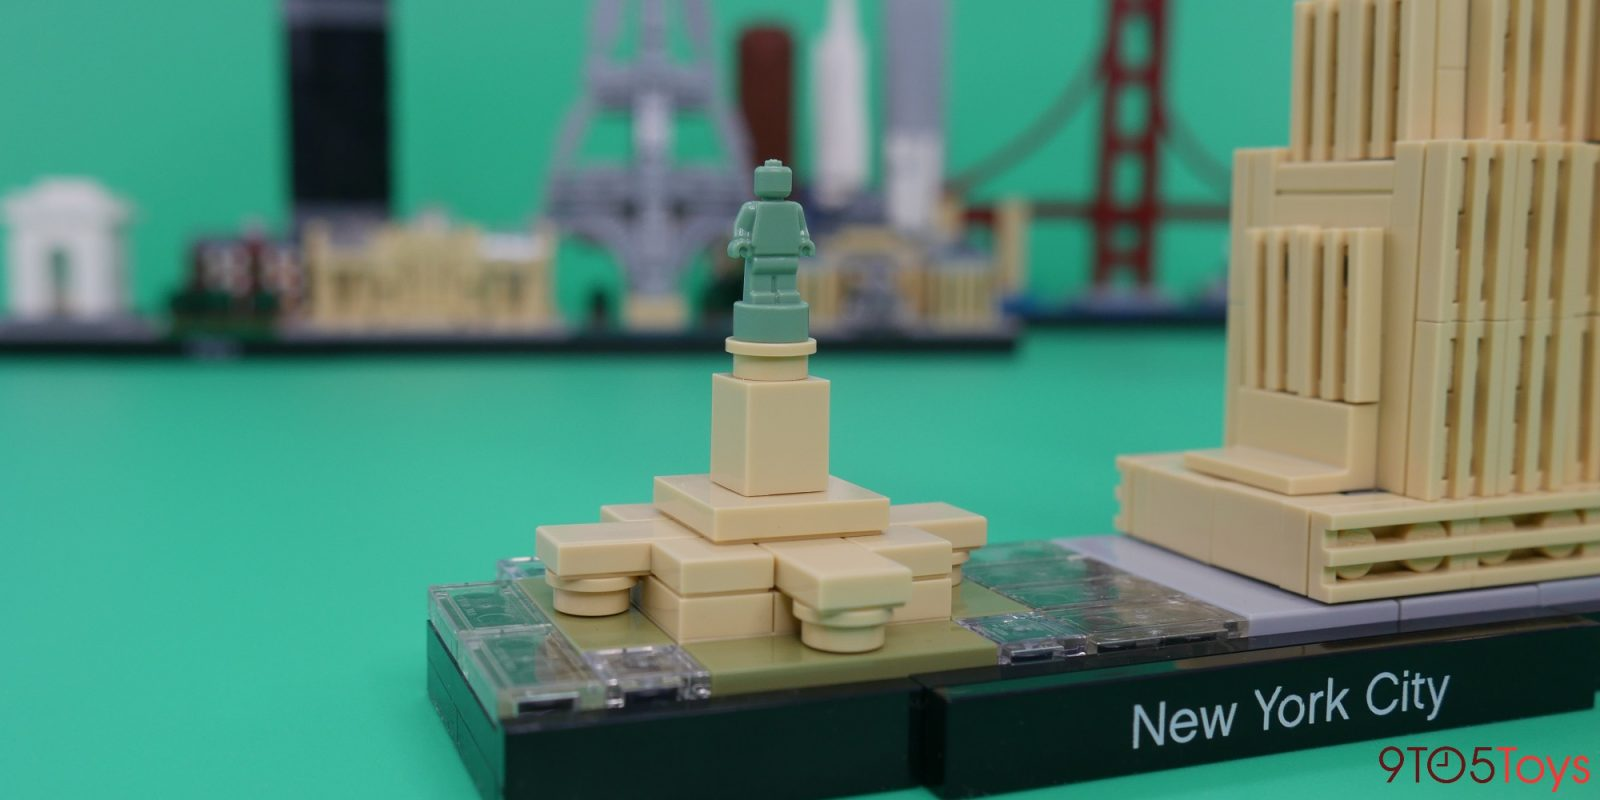 LEGO New York City Skyline Review: An authentic yet miniature recreation